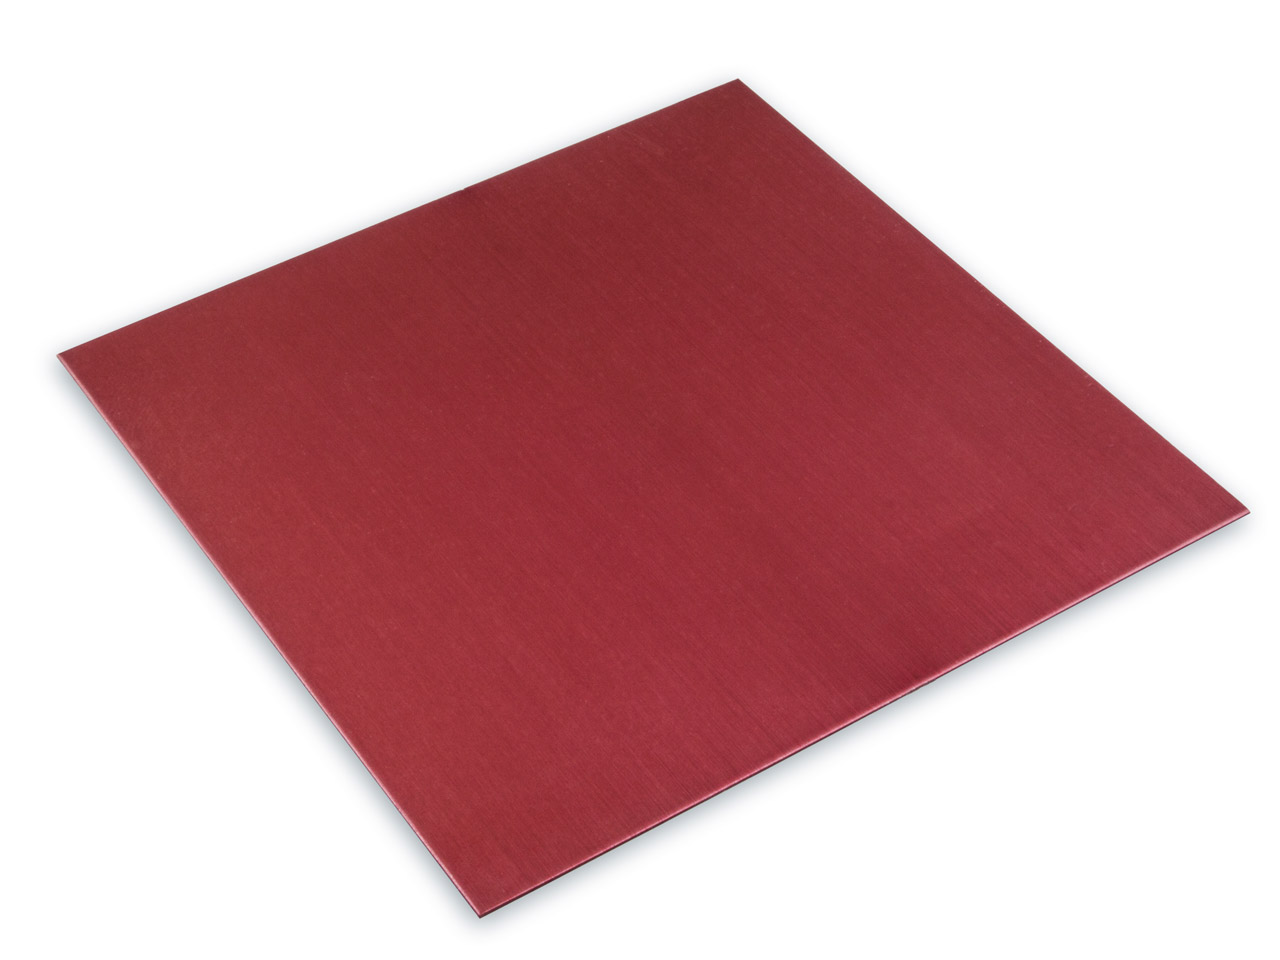 Anodised Coloured Red Aluminium Sheet 100x100x0 7mm